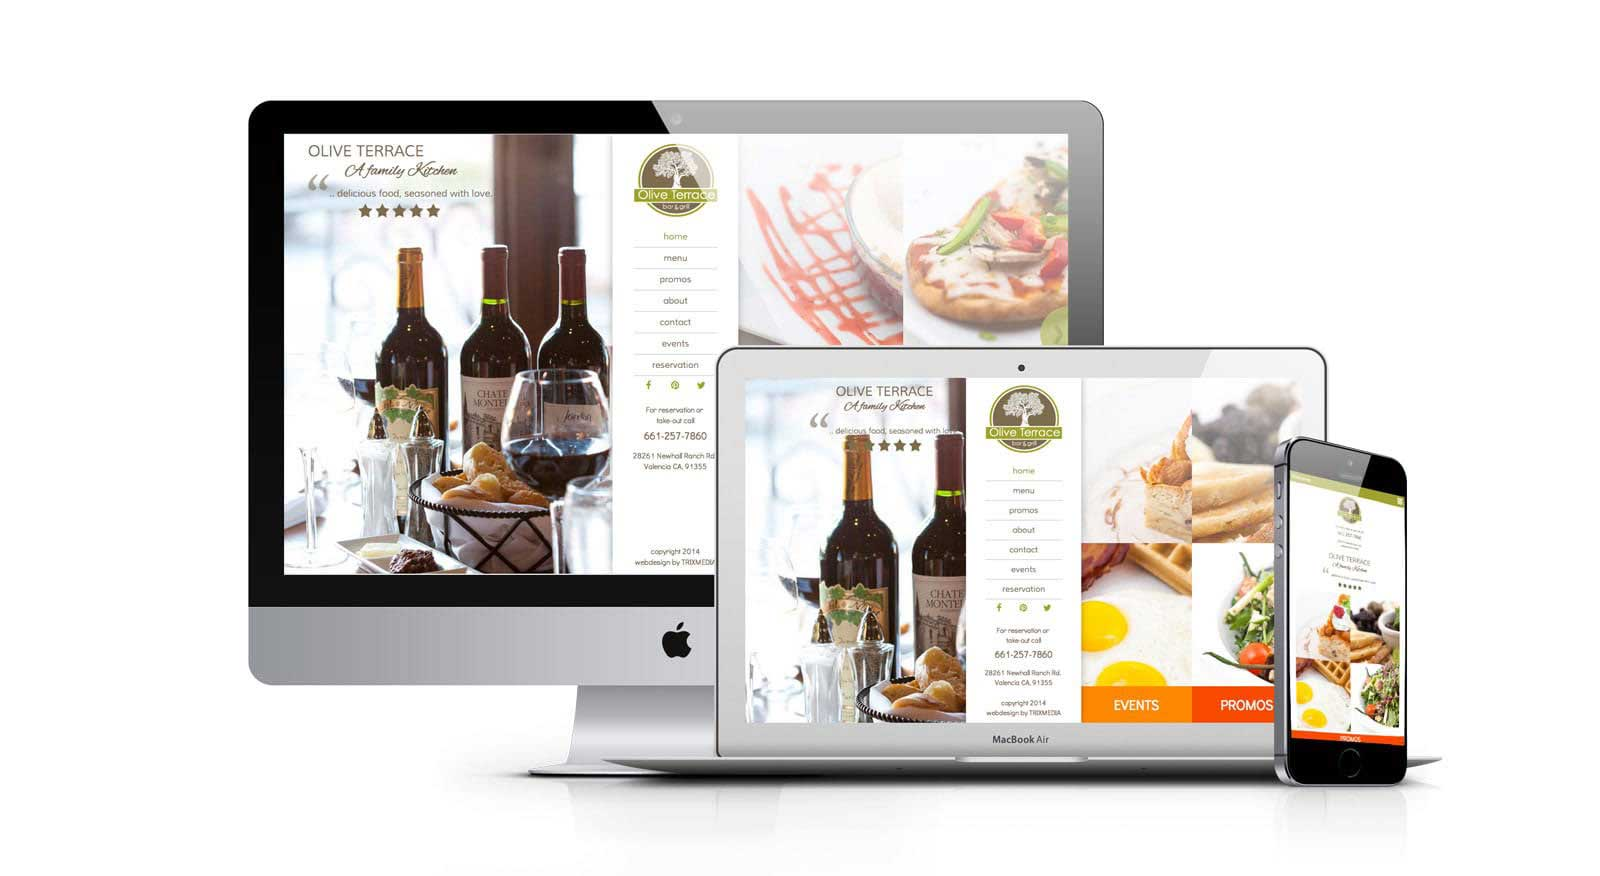 Olive Terrace Restaurant Website Design